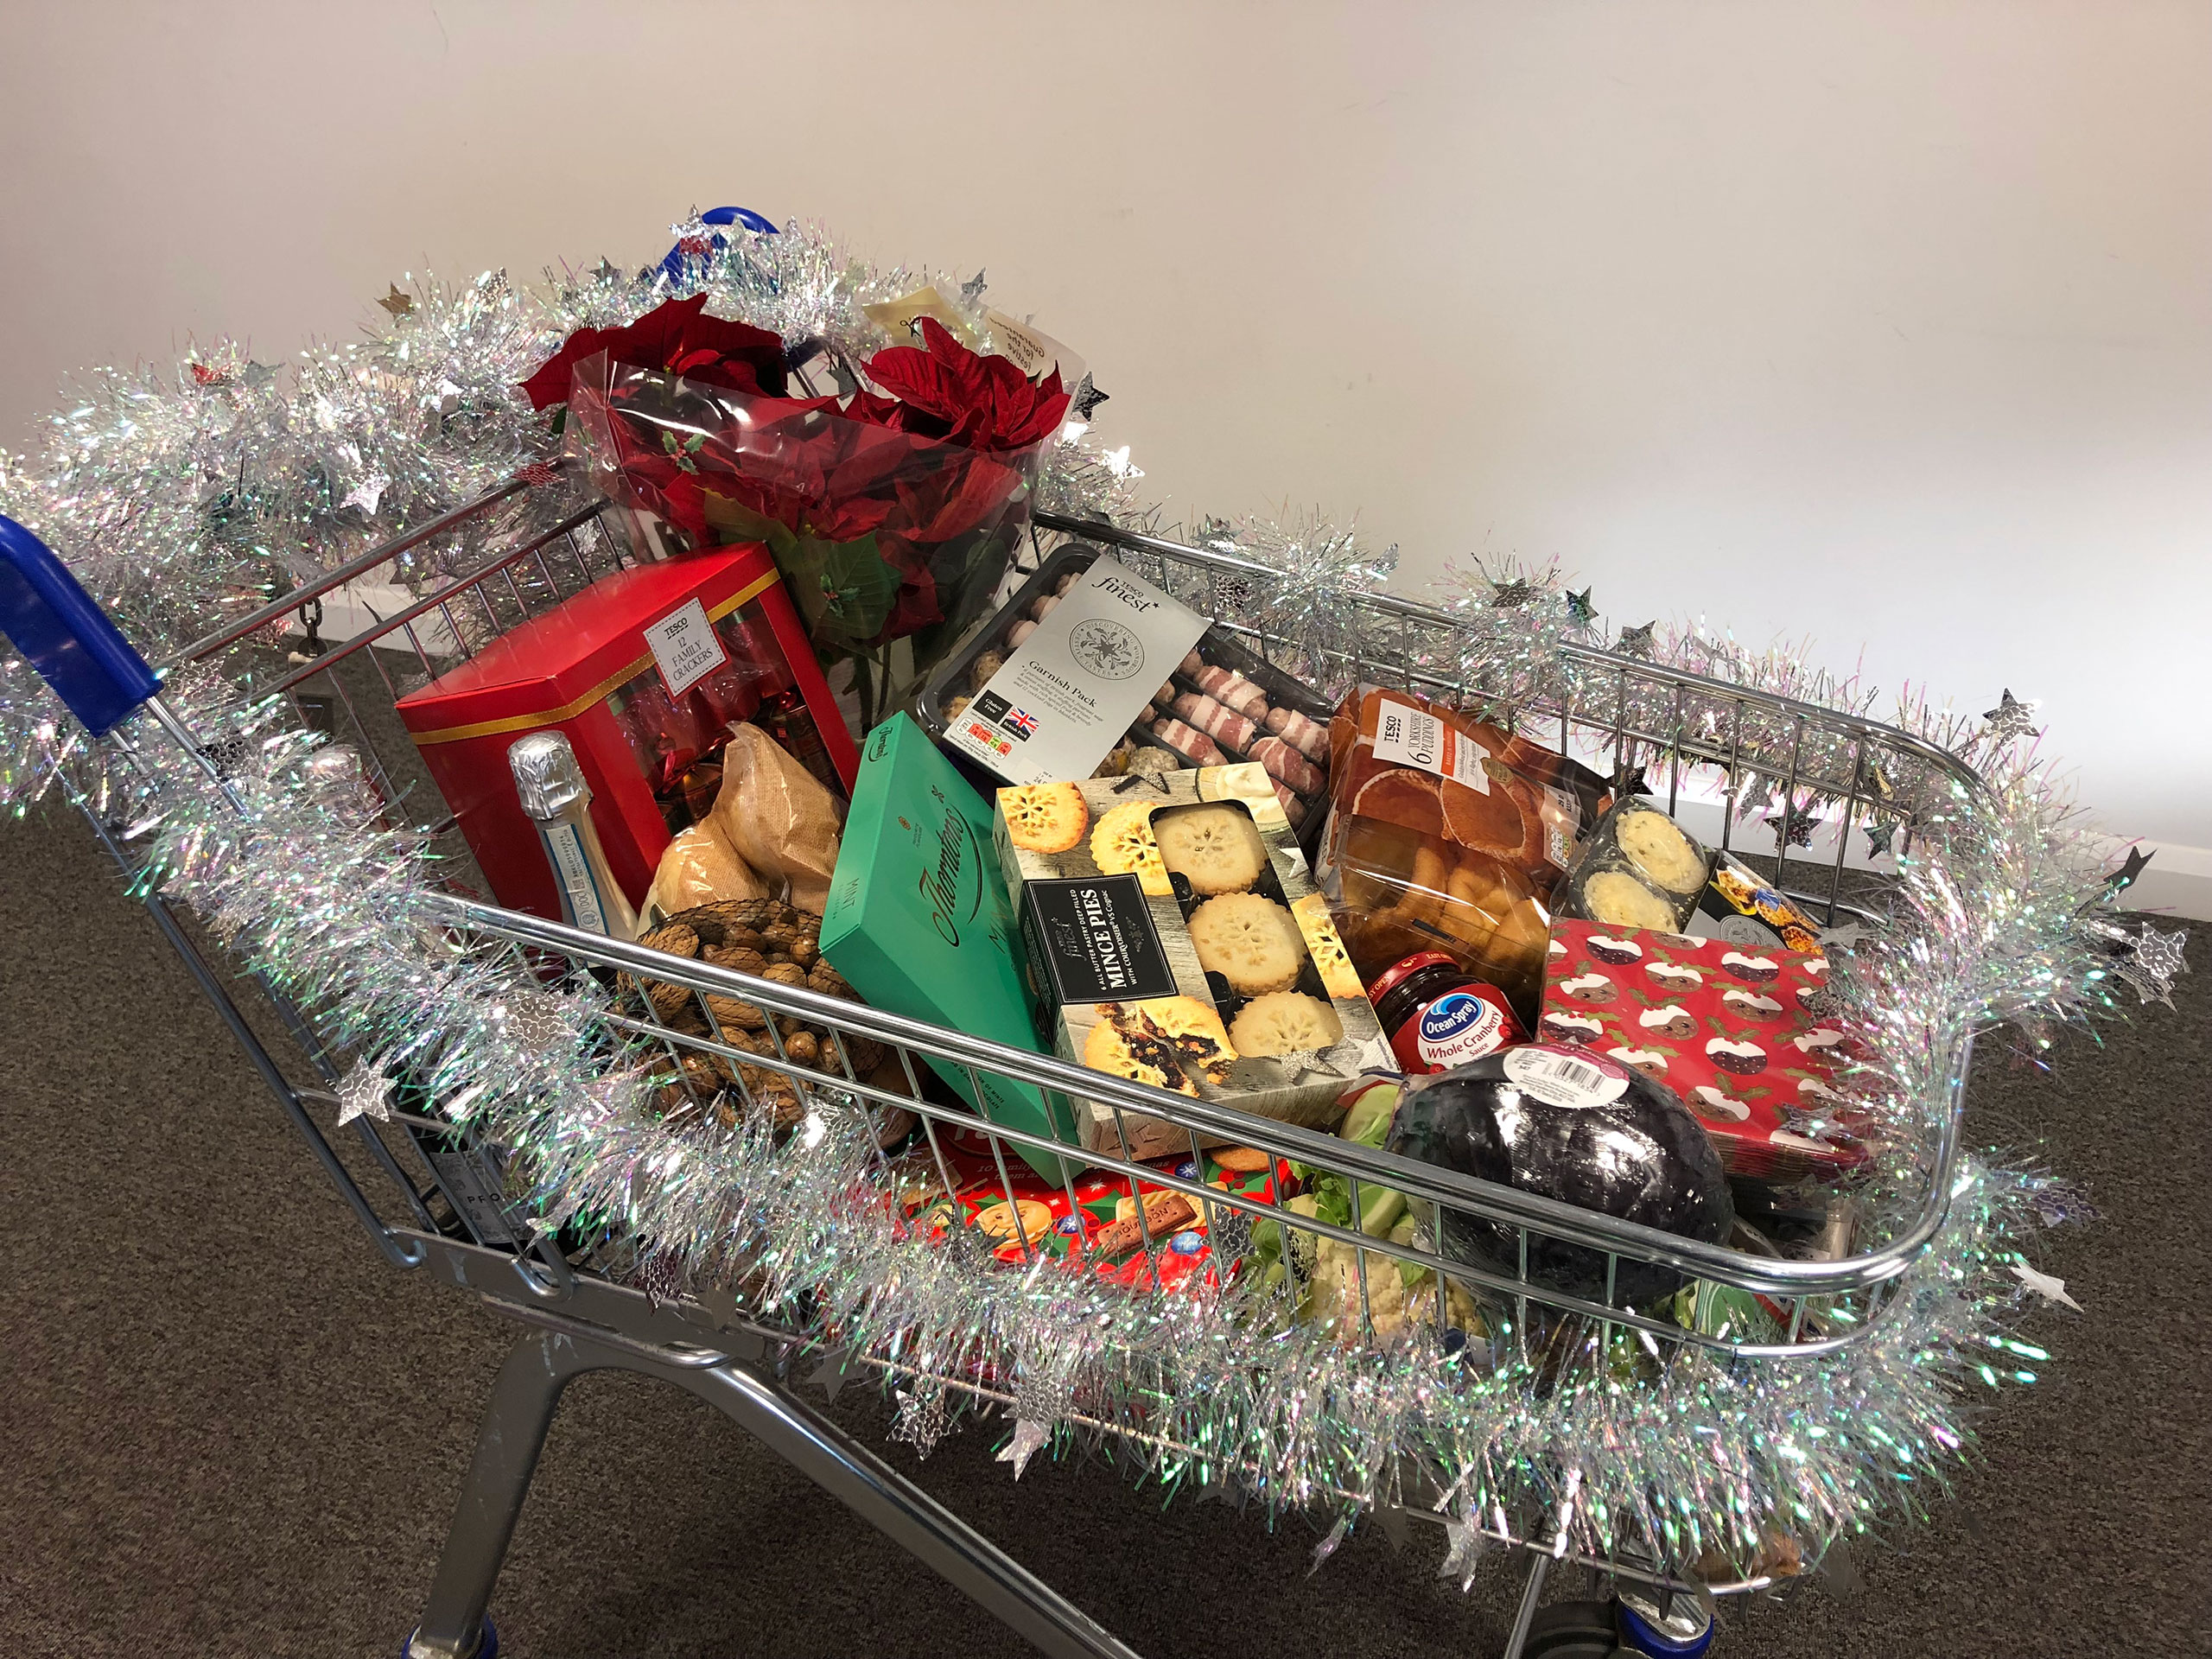 #justaddturkey Christmas Competition